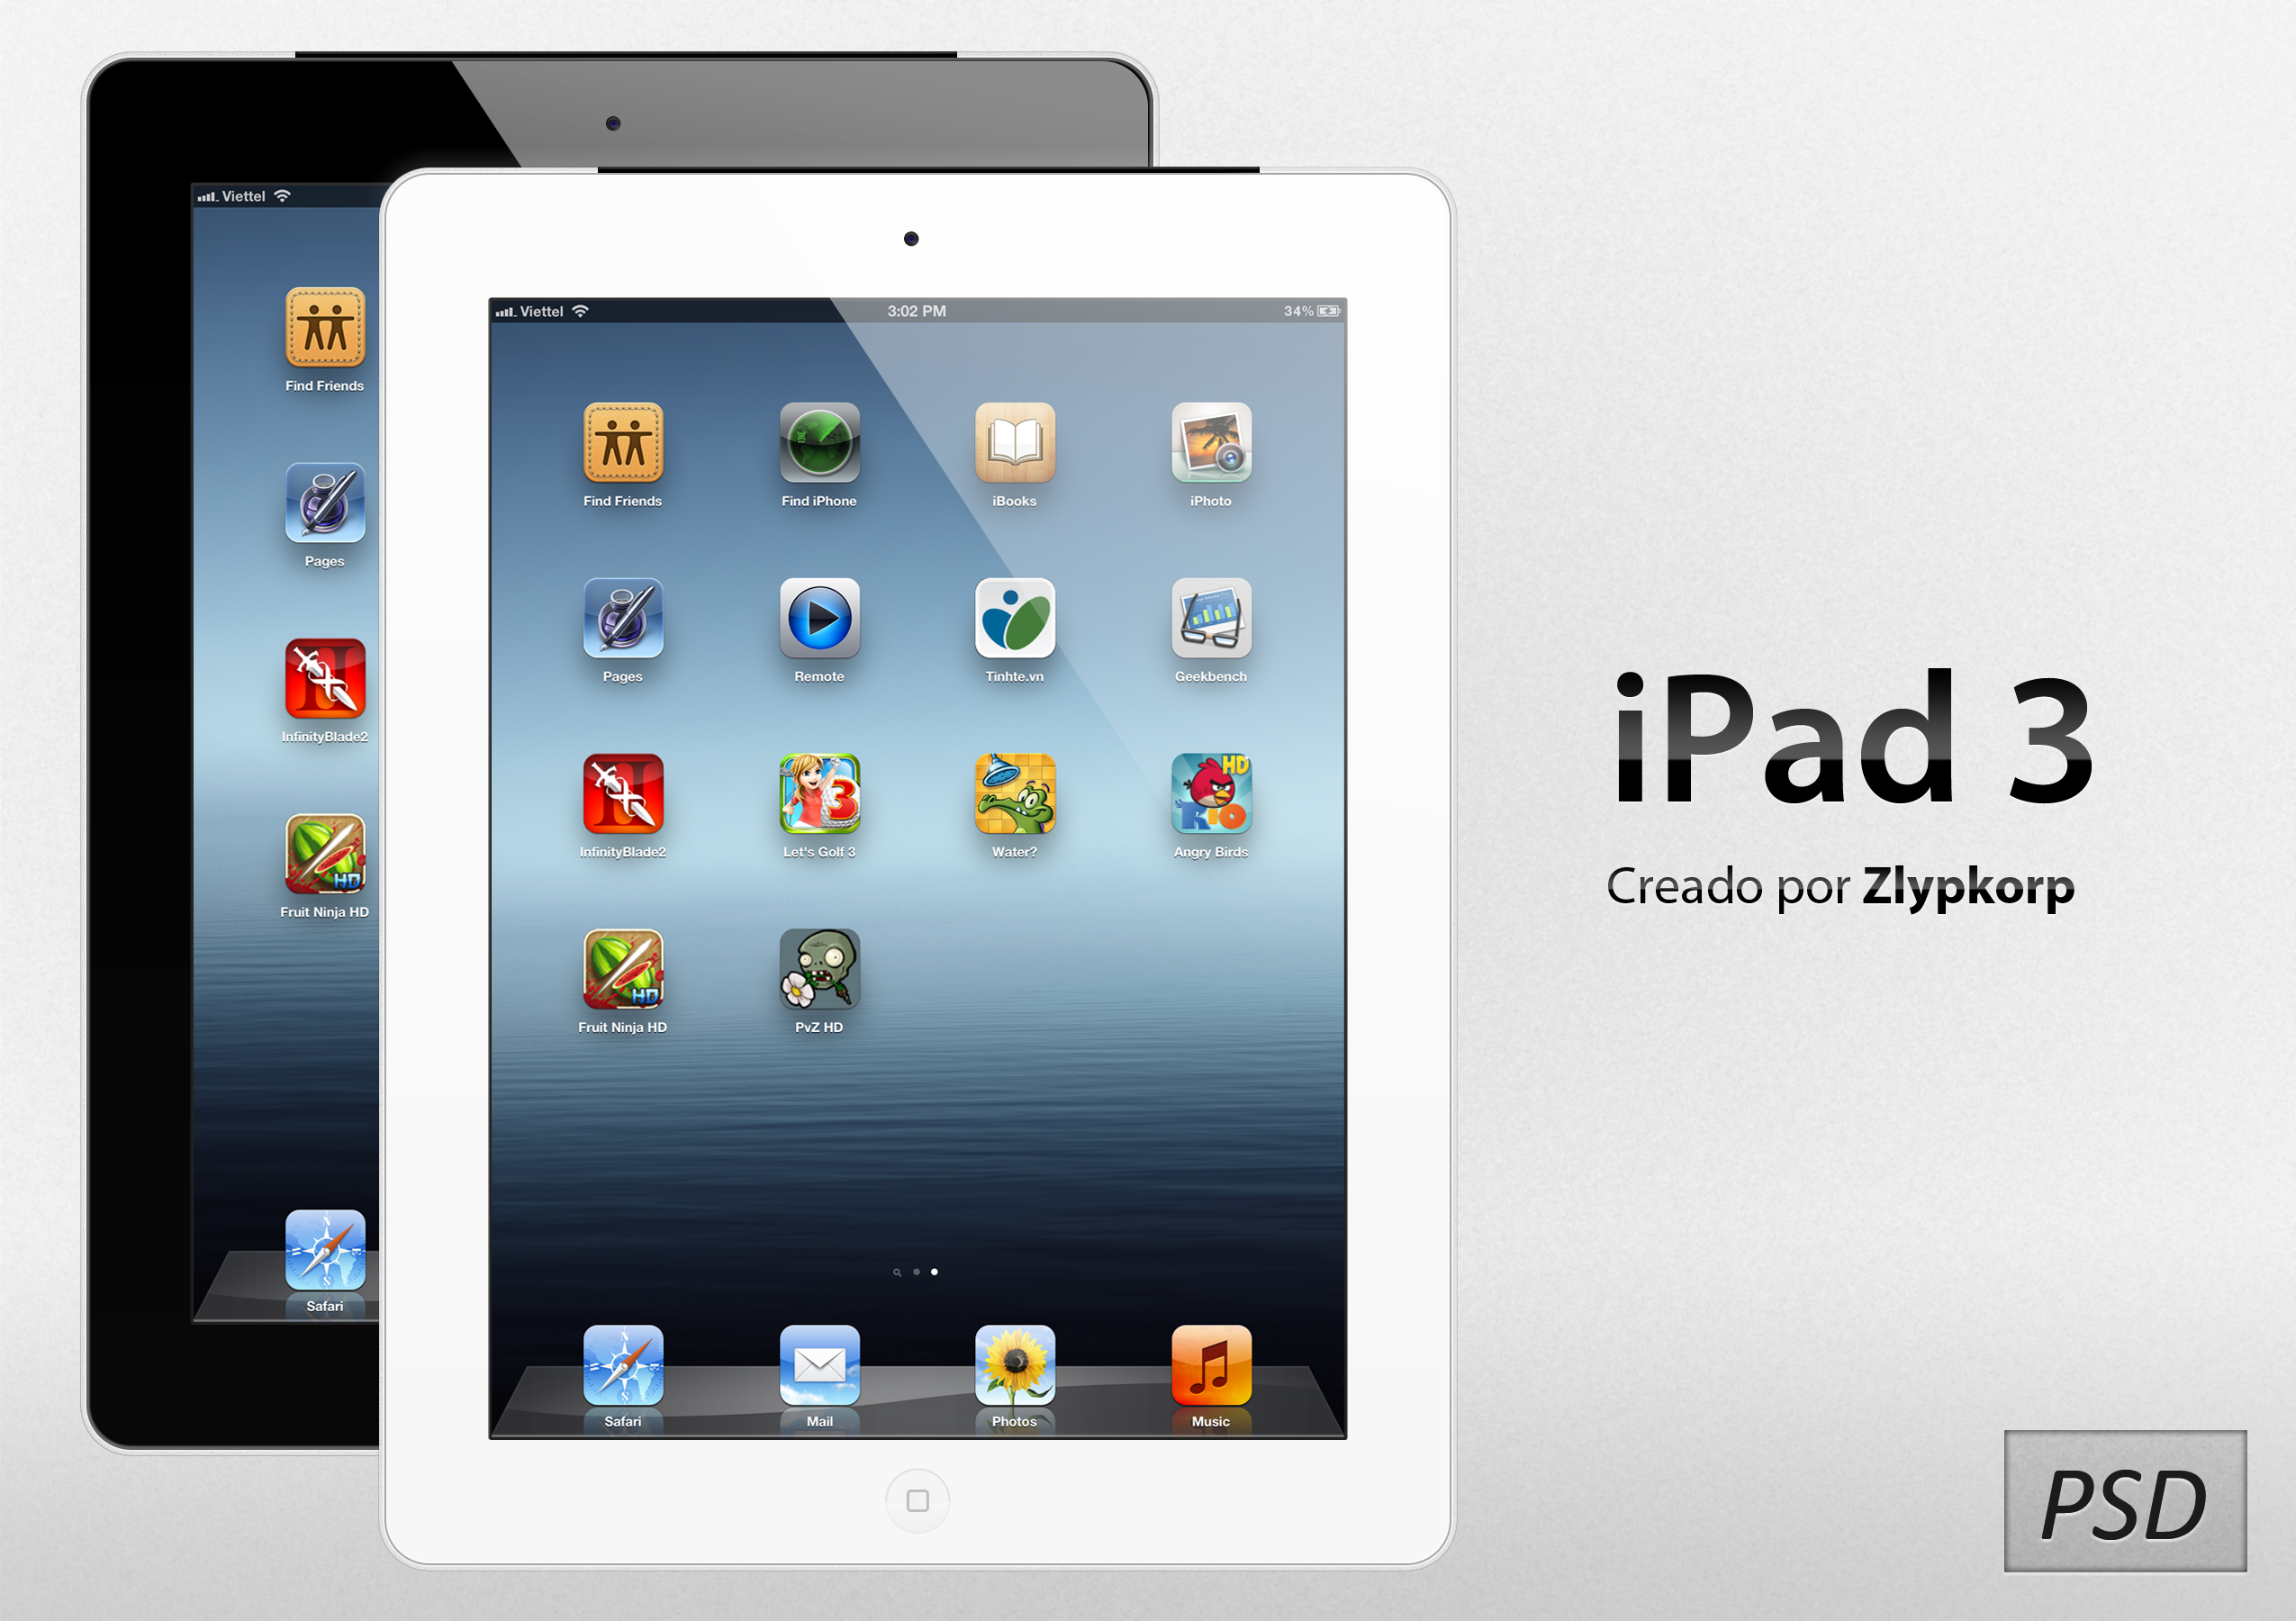 Apple Ipad 3 Mainboard Schematics Diagram And Hardware Solution 2 Logic Board